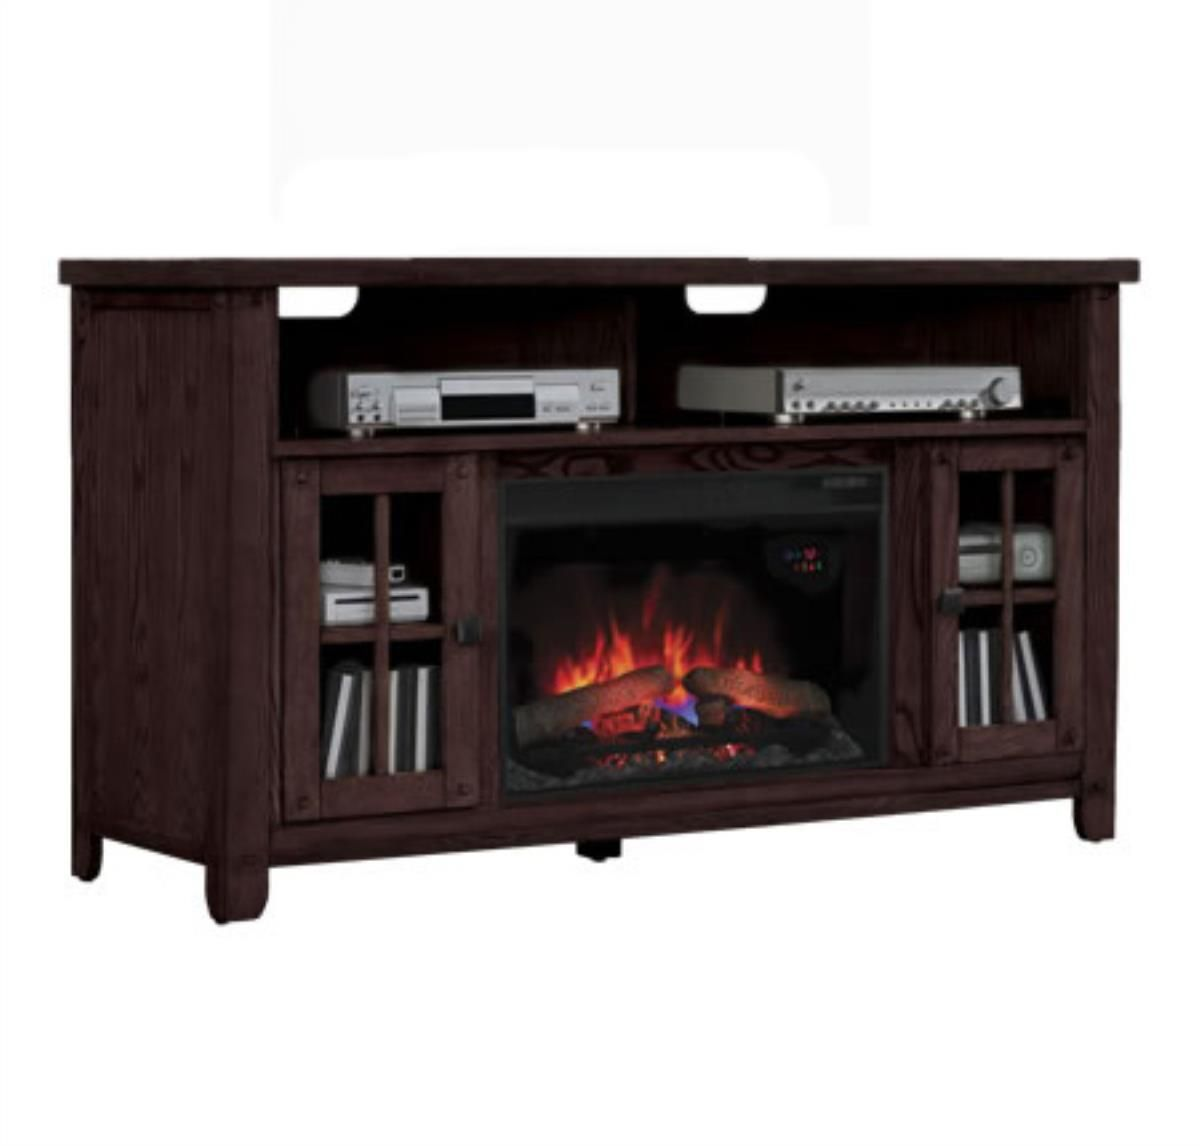 Air and water vzcj a u w pinterest mantels